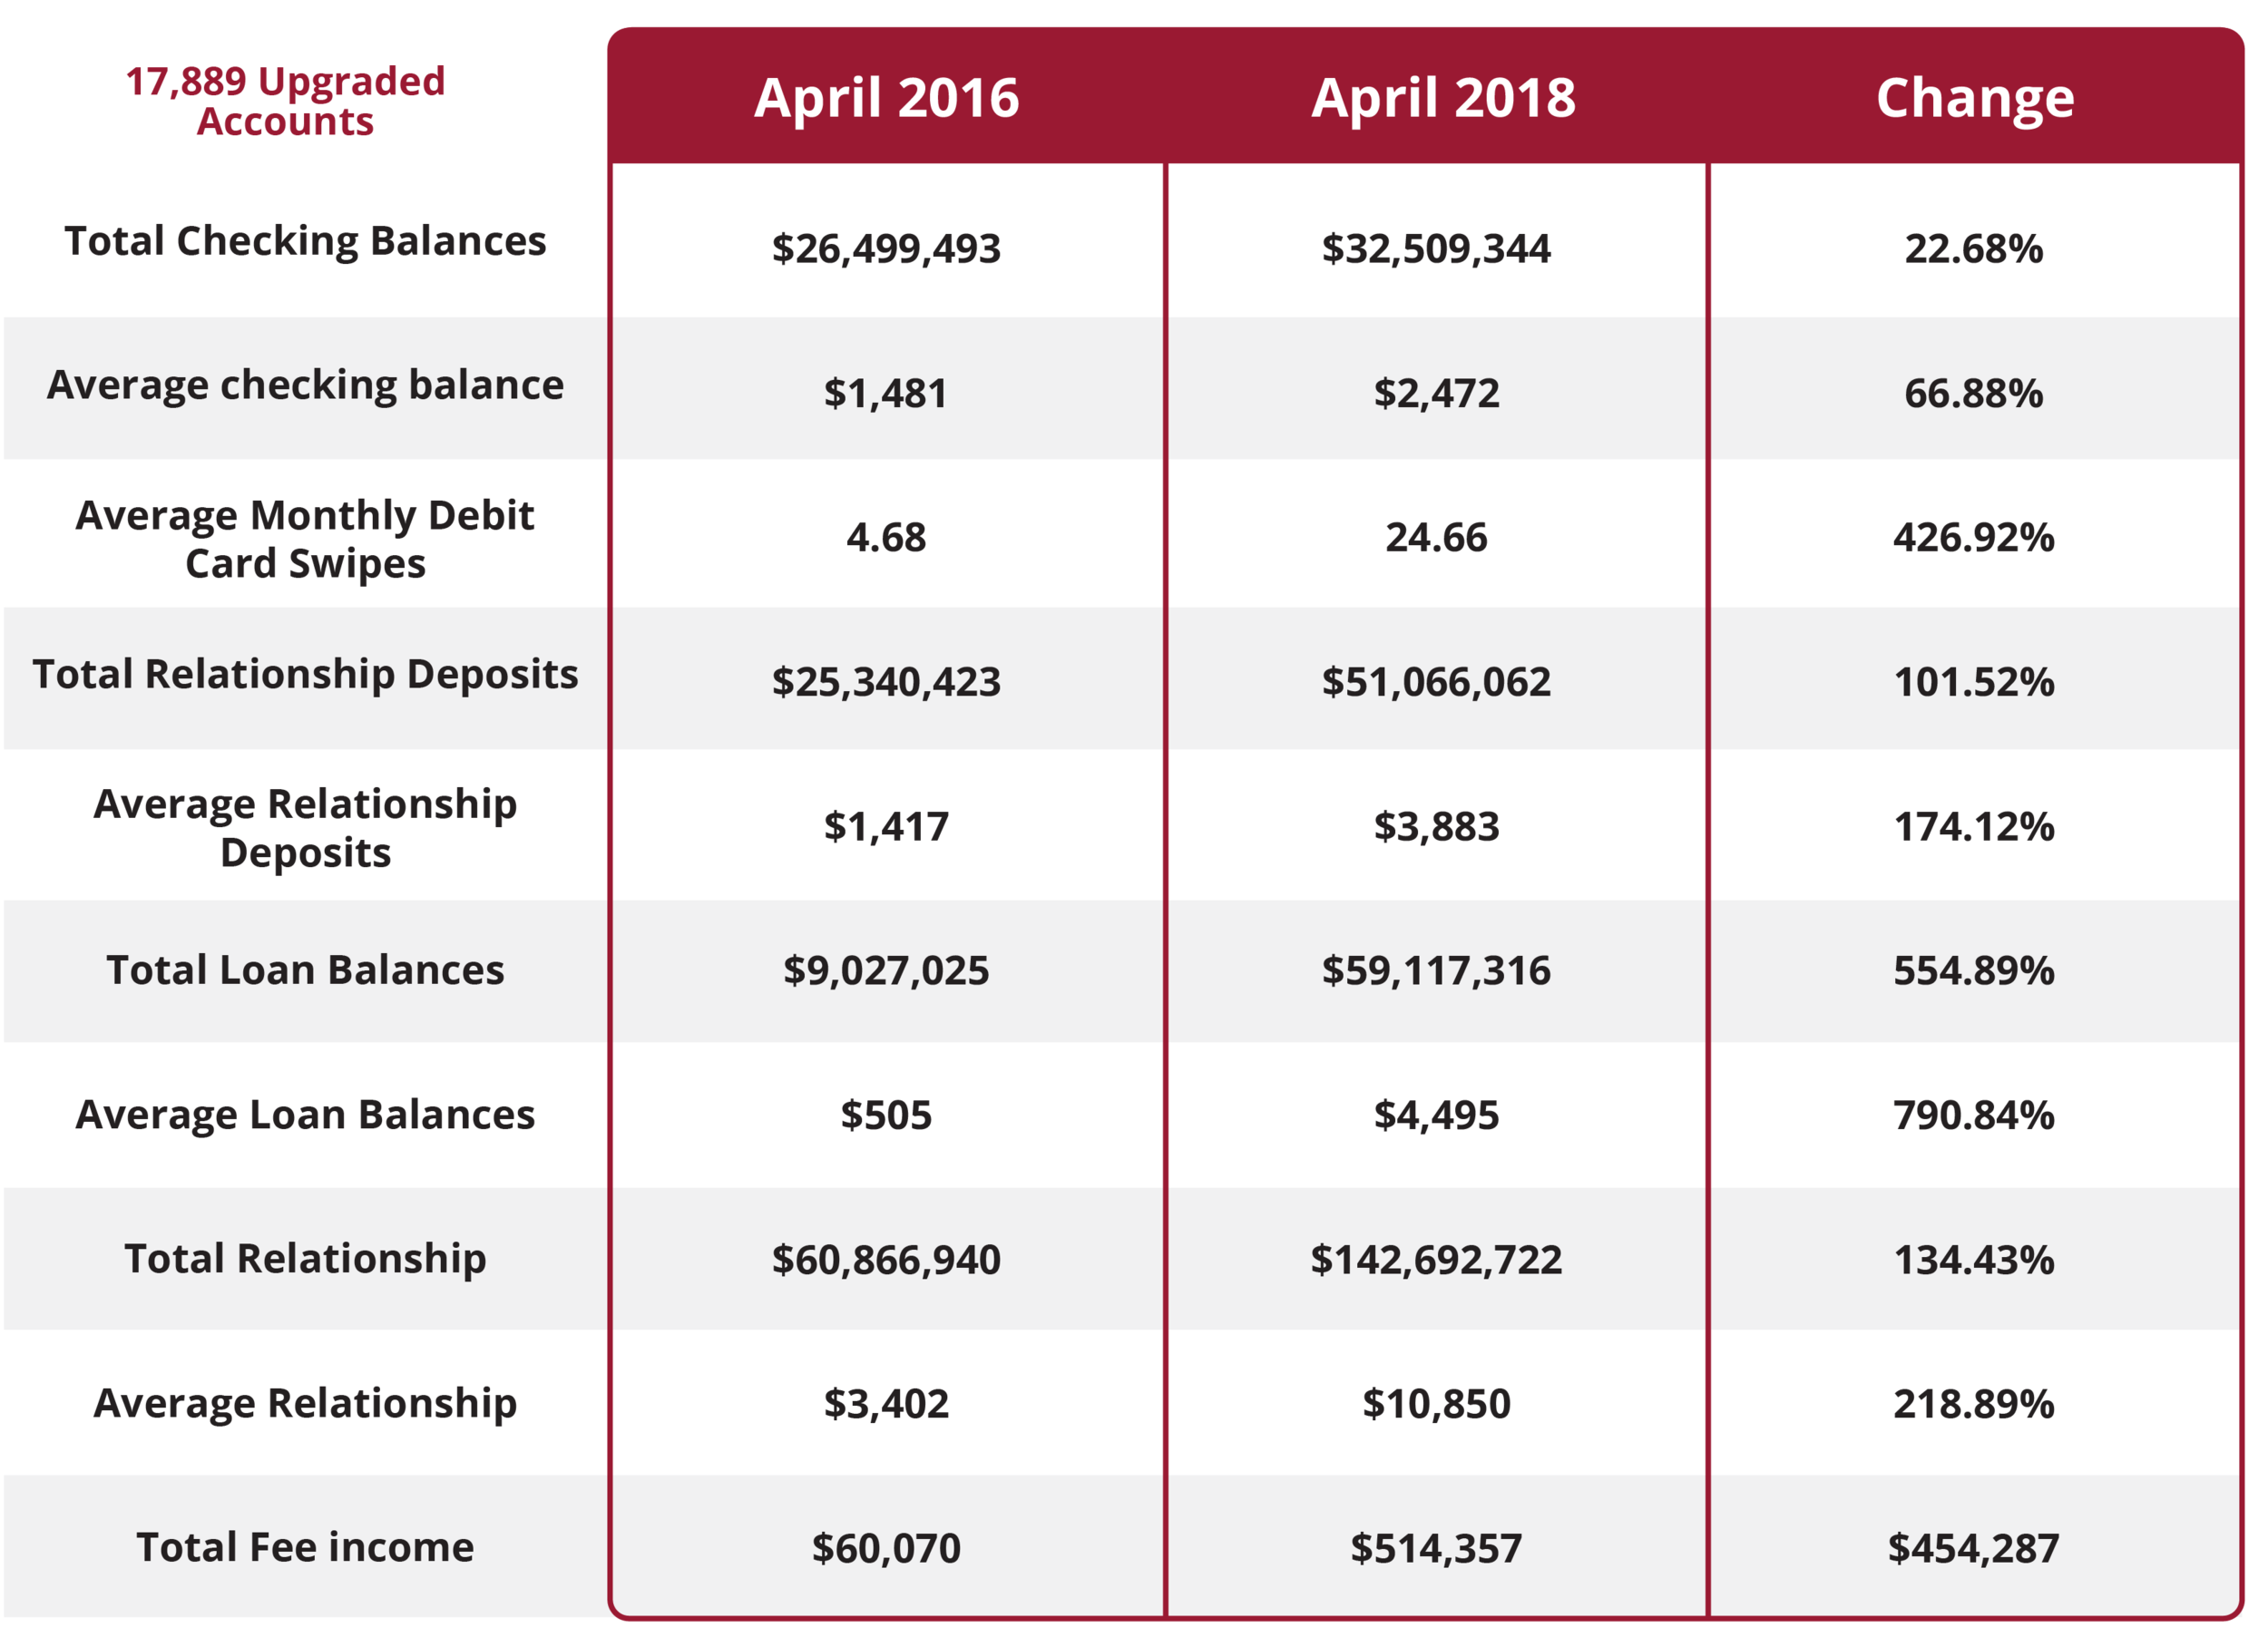 MDC_ResourceOne_ComparisonChart_L1cp-01.png